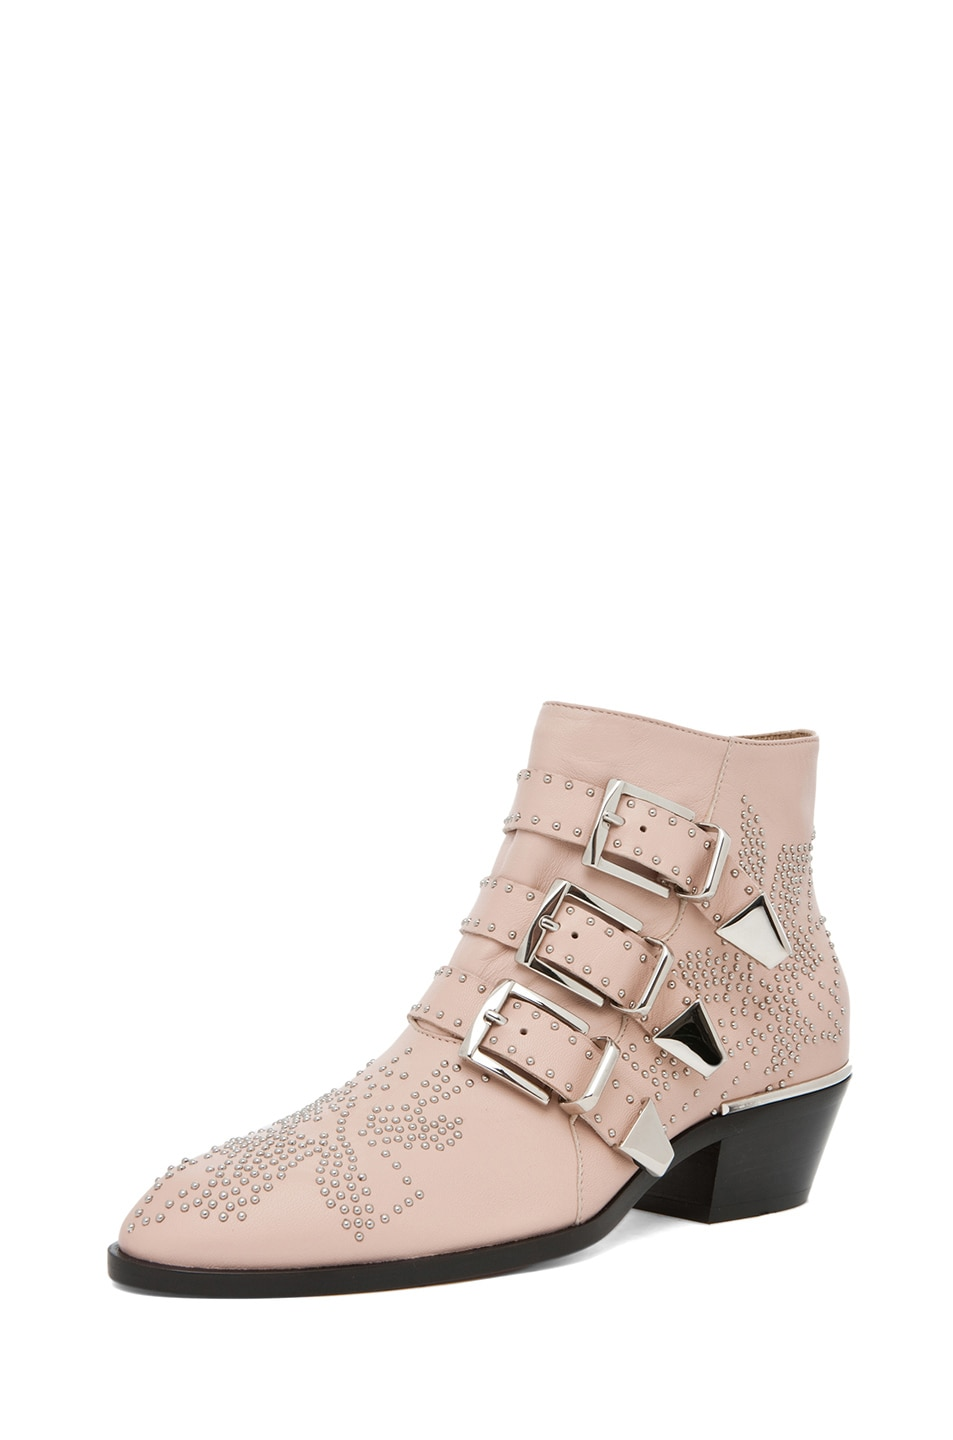 Image 2 of Chloe Susanna Leather Studded Bootie in Nude Pink